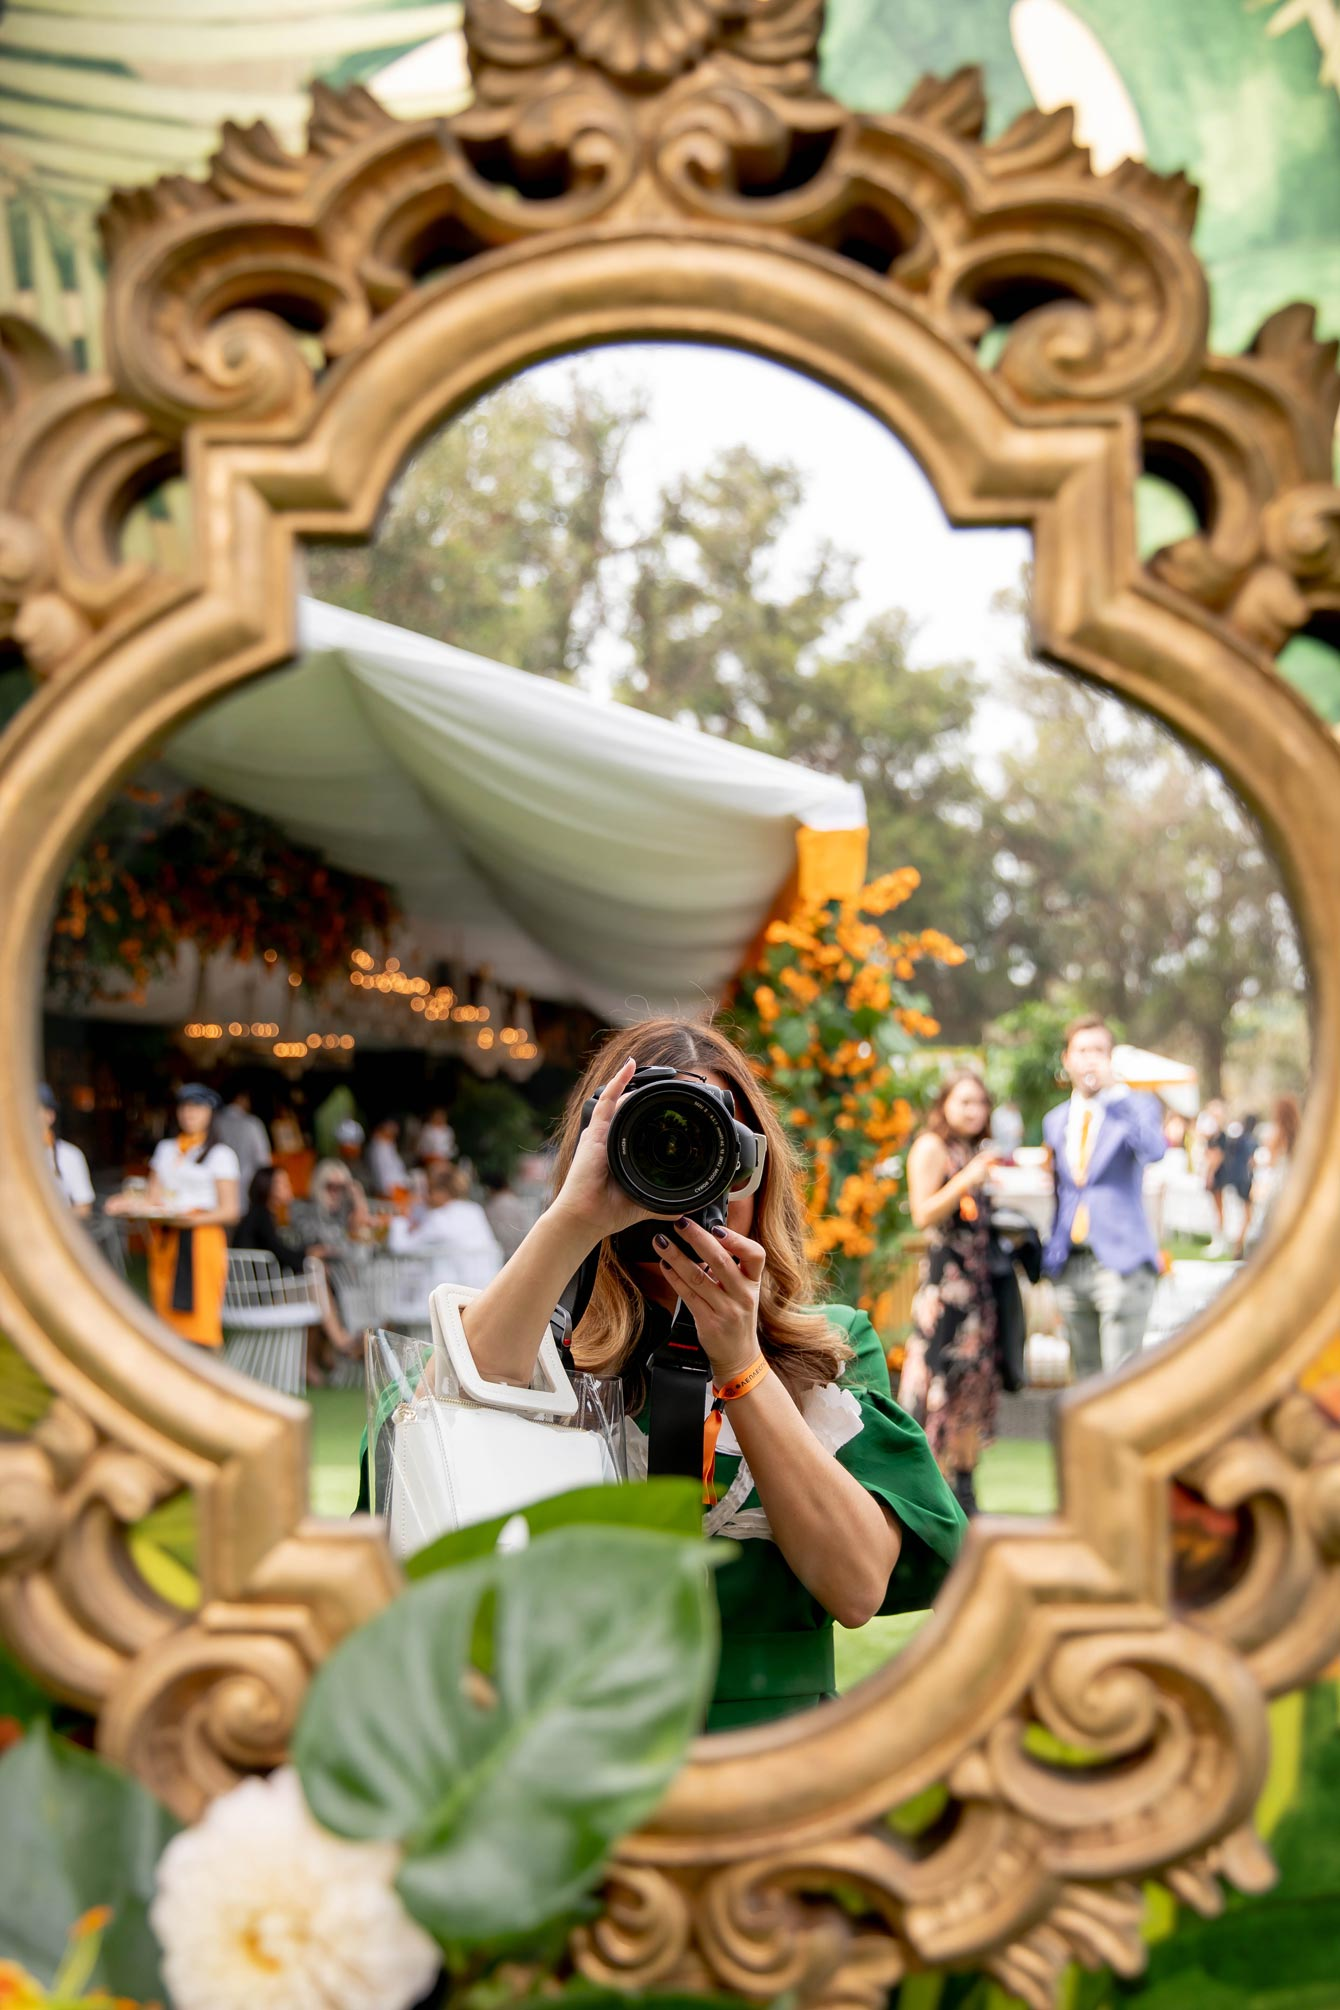 Veuve Clicquot Polo Classic Decor